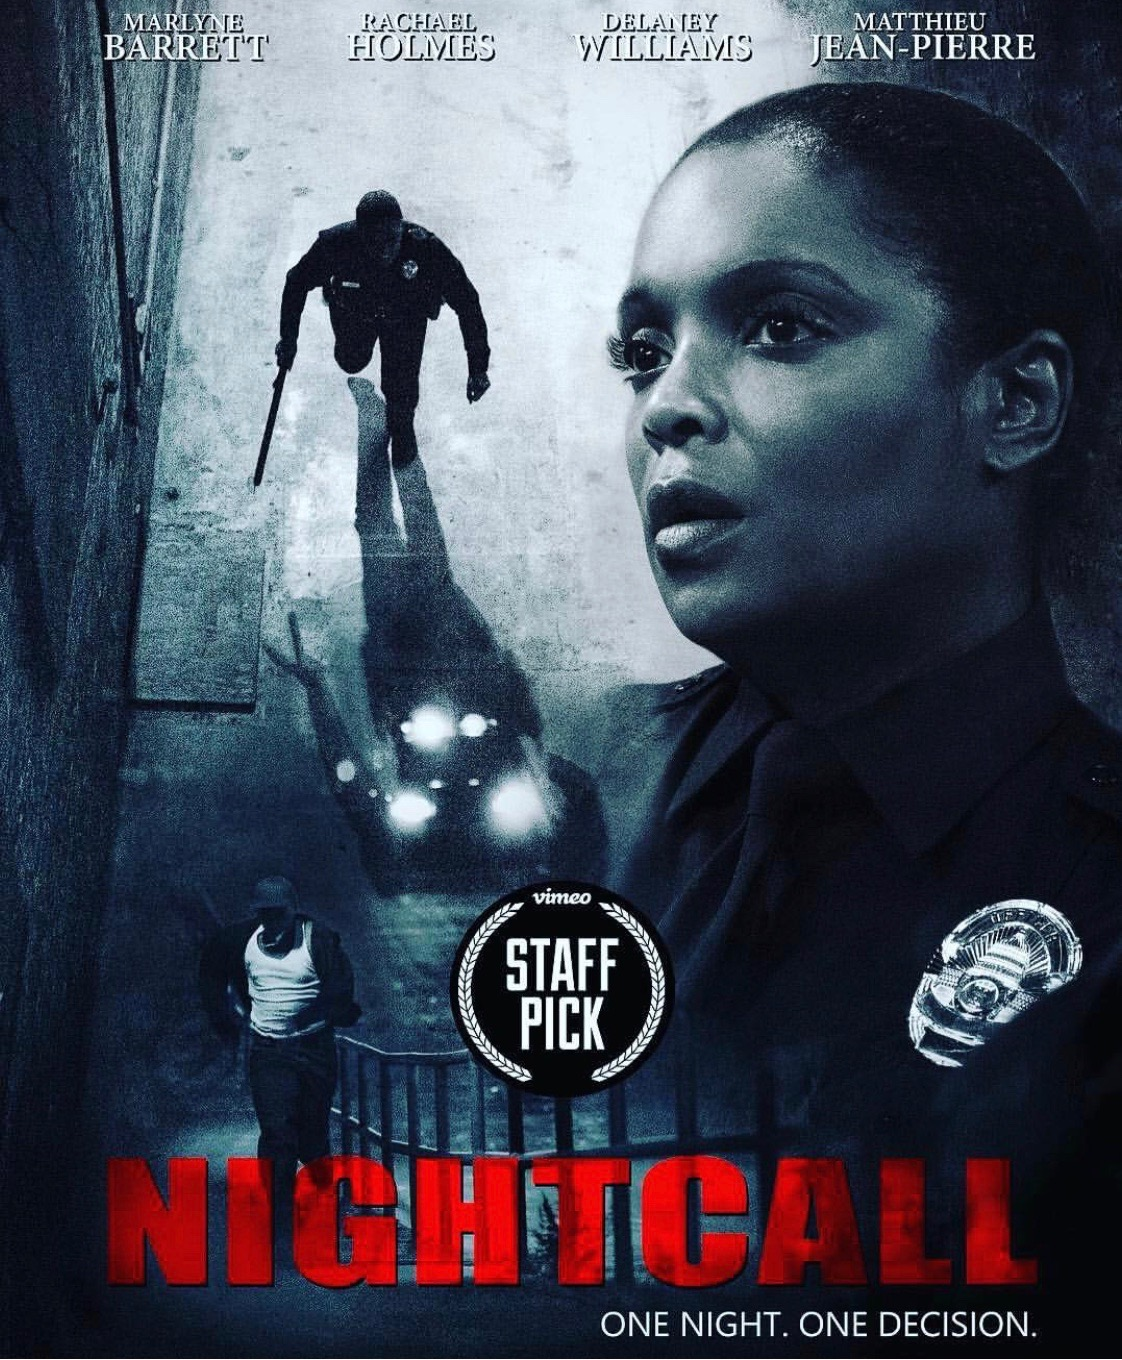 Night Call is selected as Vimeo's Staff Pic of the Week